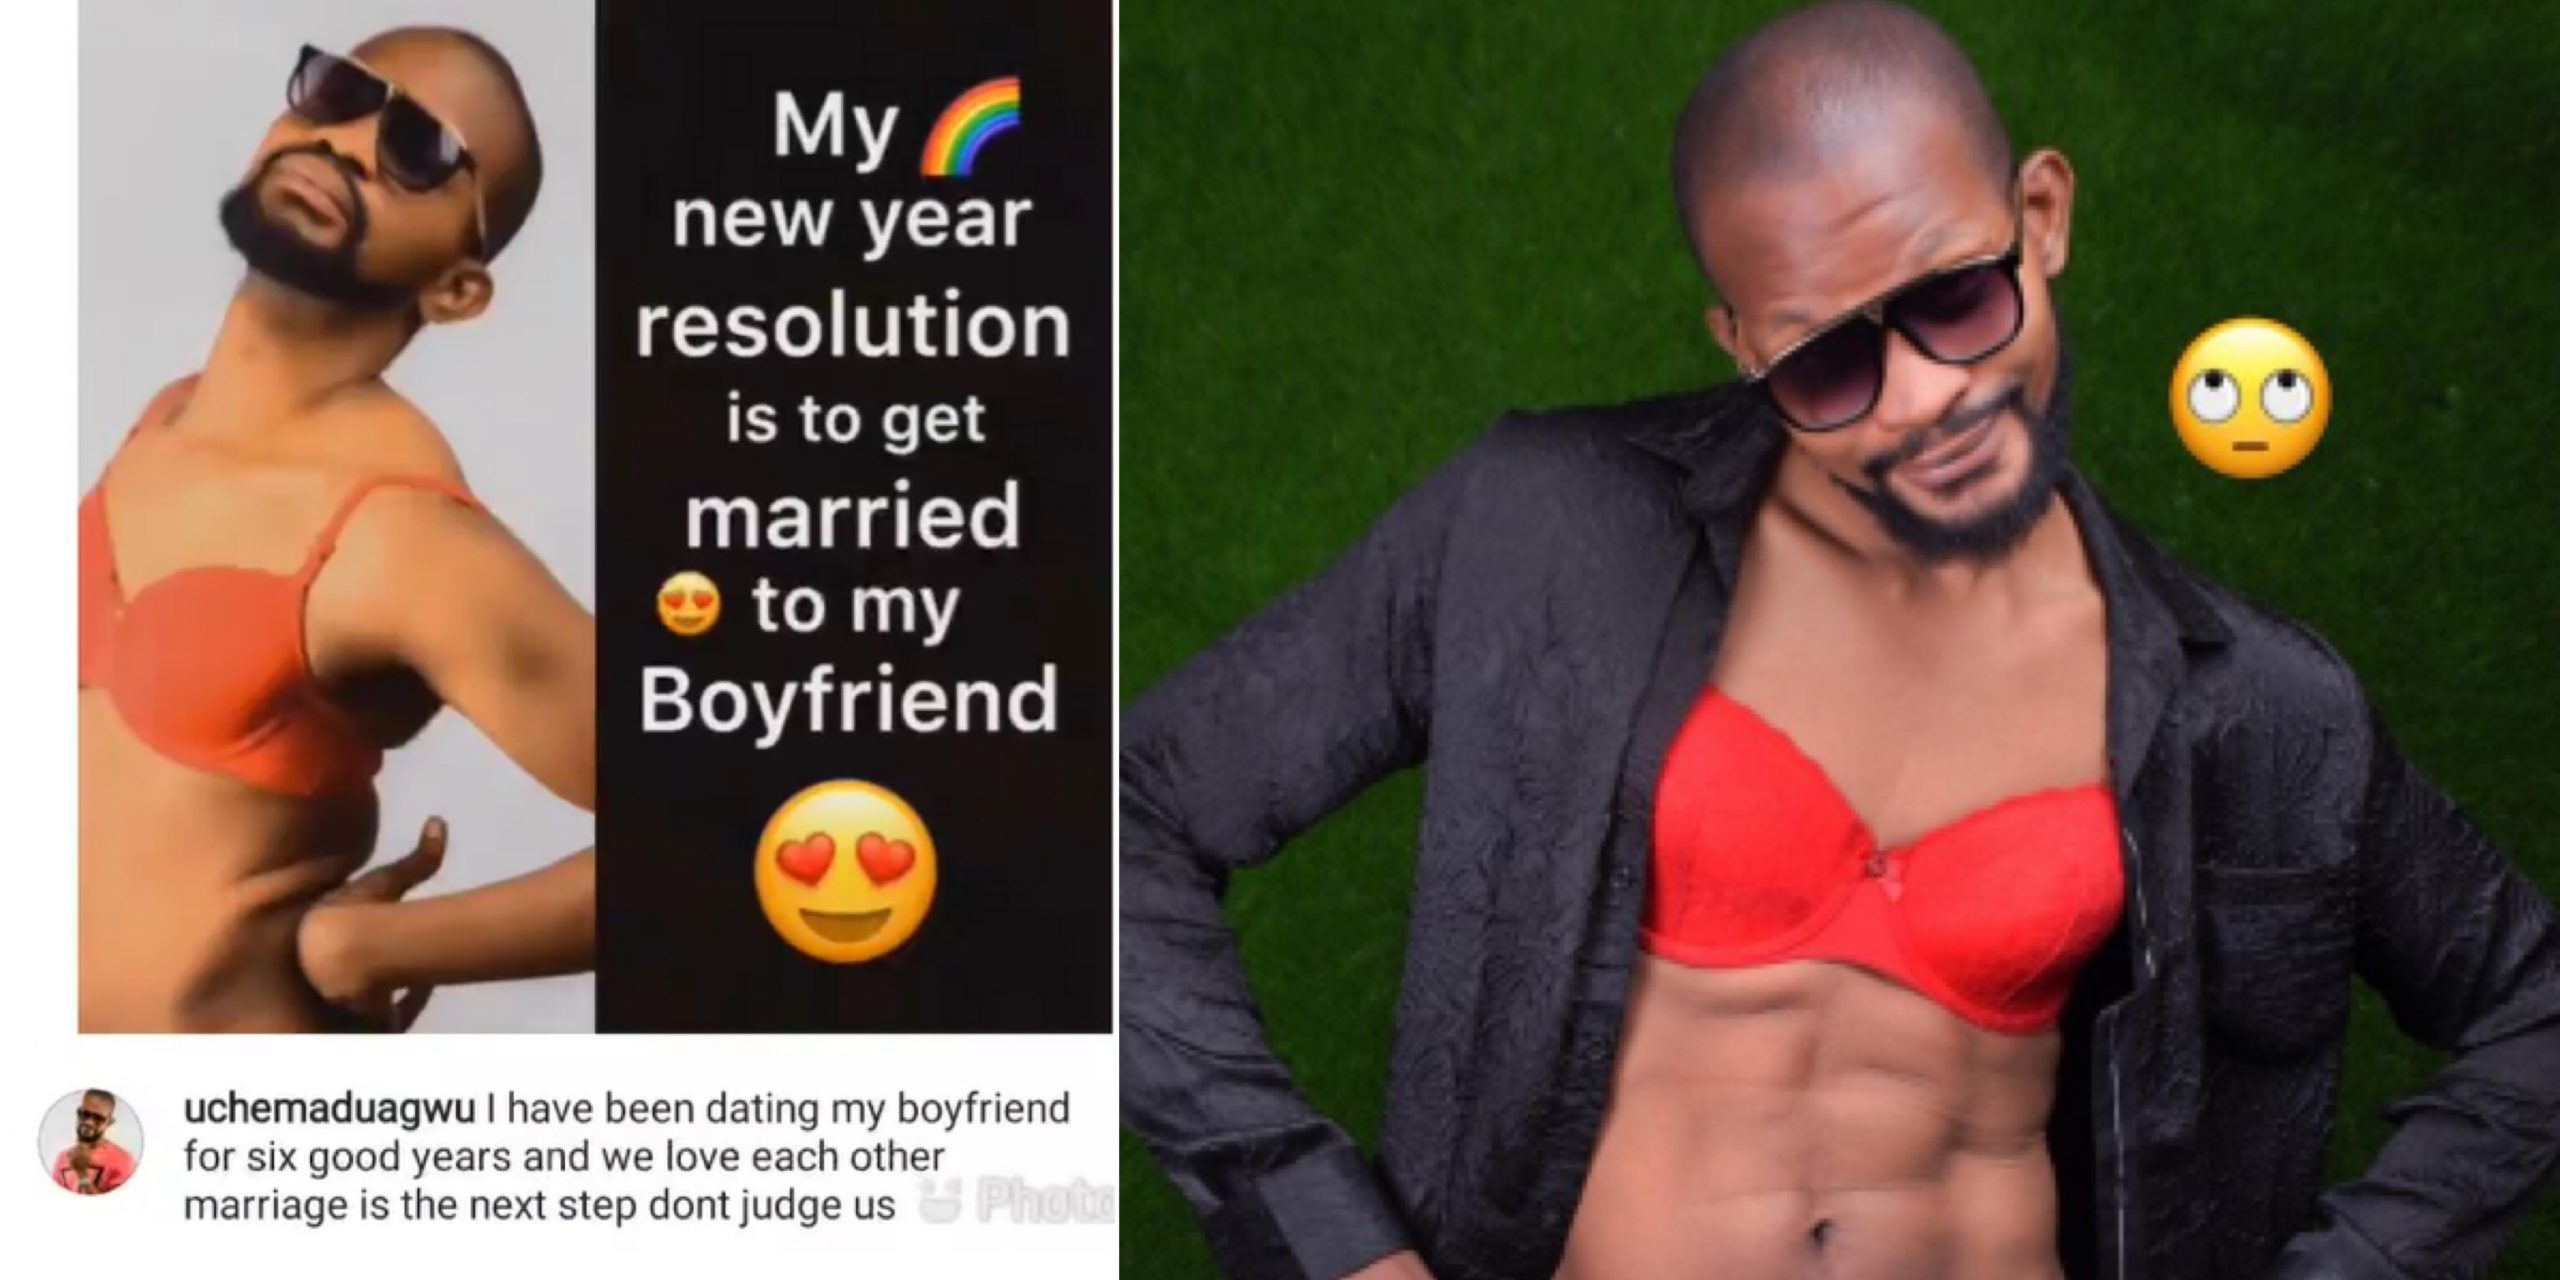 My new year resolution is to get married to my boyfriend of six years - Uche  Maduagwu reveals - AkPraise